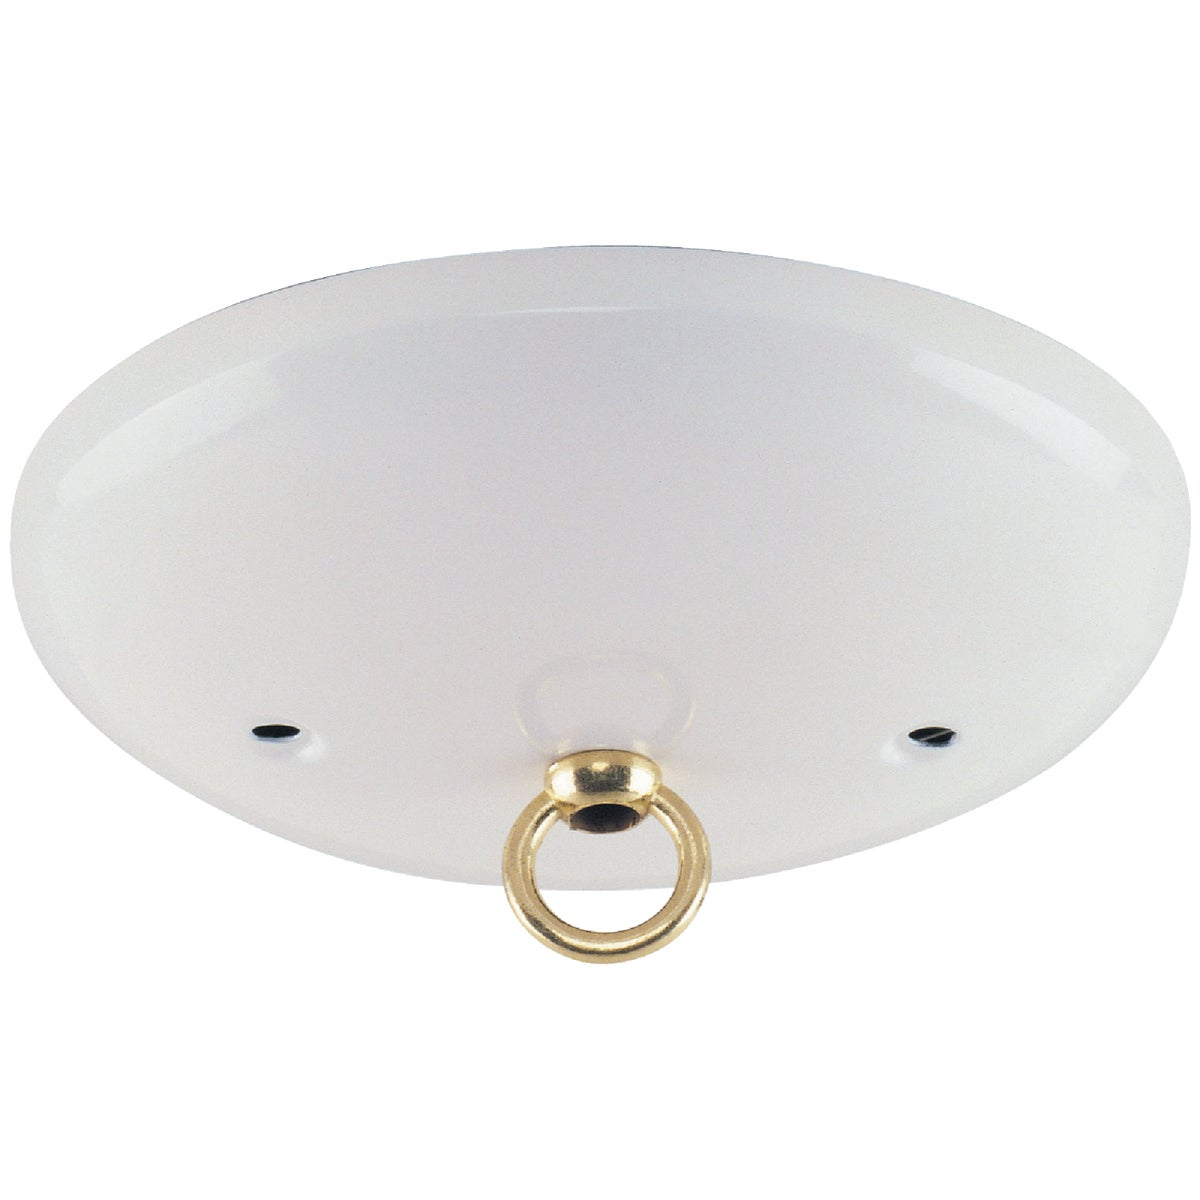 WHITE CANOPY - 70037 by Westinghouse Lightng